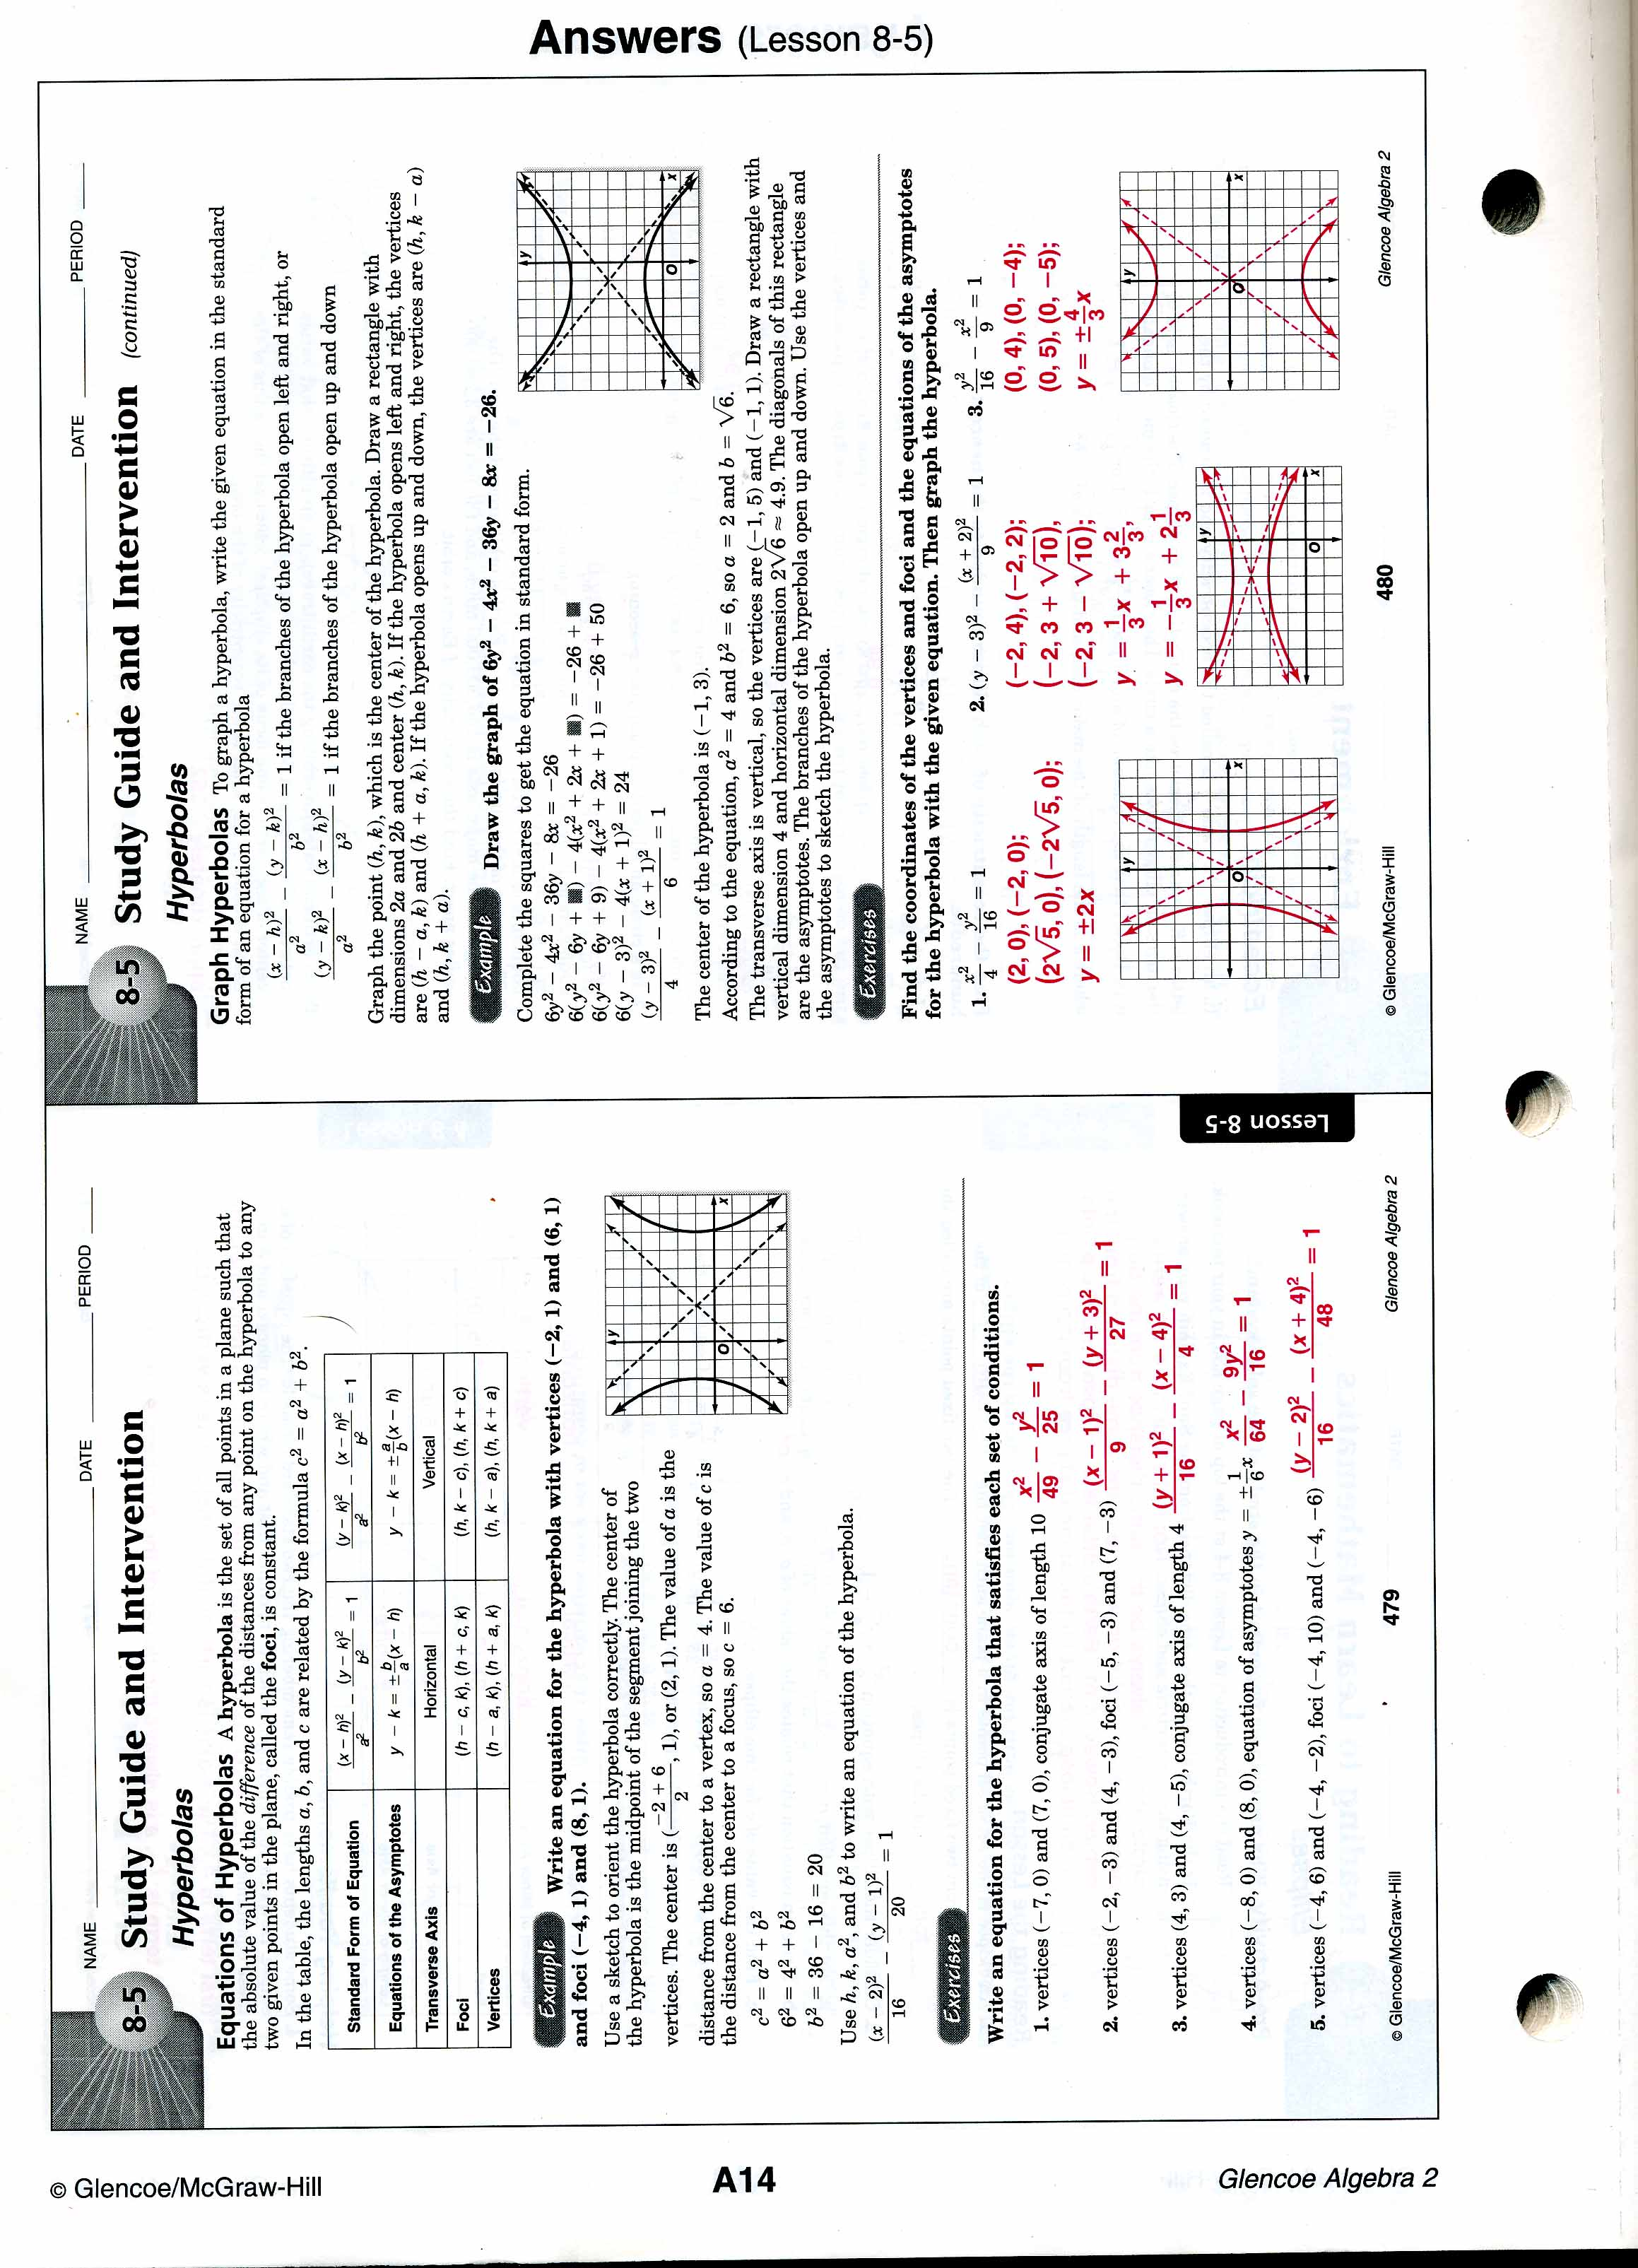 Mrscabral Algebra 2 Worksheet Answers